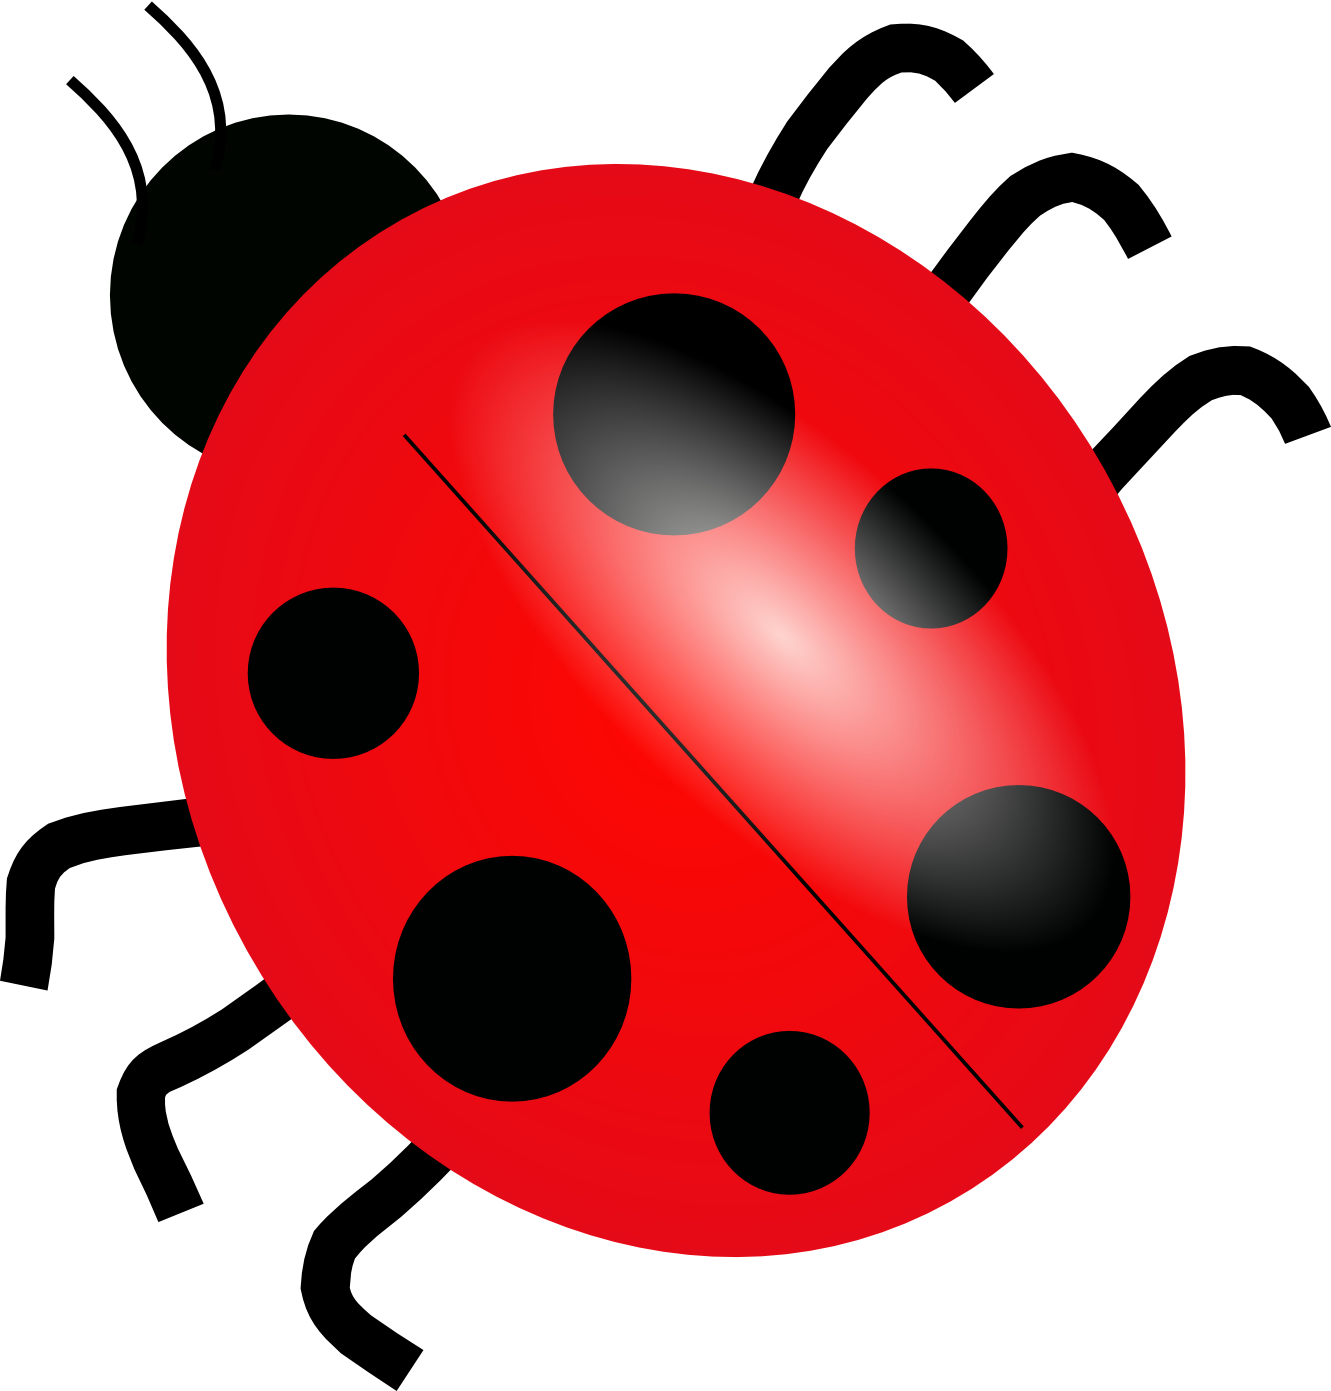 Clipart Info - Ladybug HD PNG